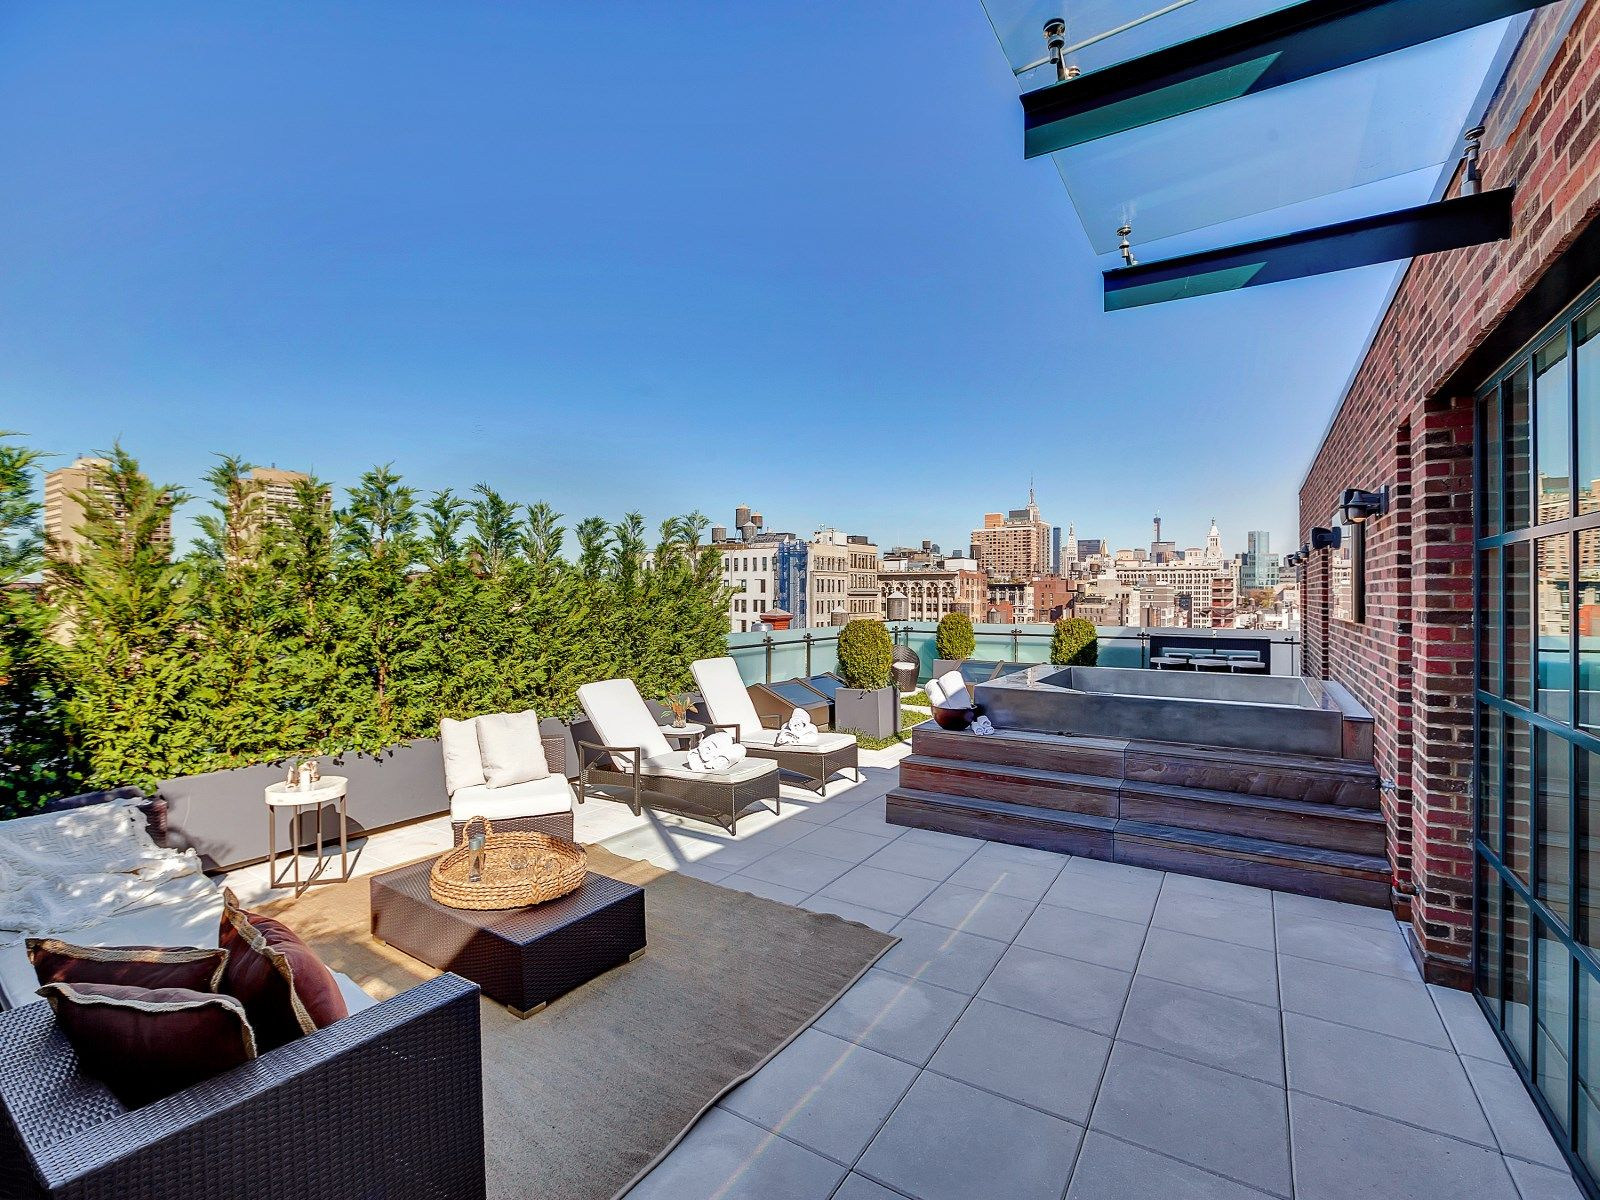 Check Out Sothebyshomes Com To Get The Full Write Up On This Flawless Penthouse Puck Penthouses The Crown New York Penthouse Lafayette Street Nyc Penthouse